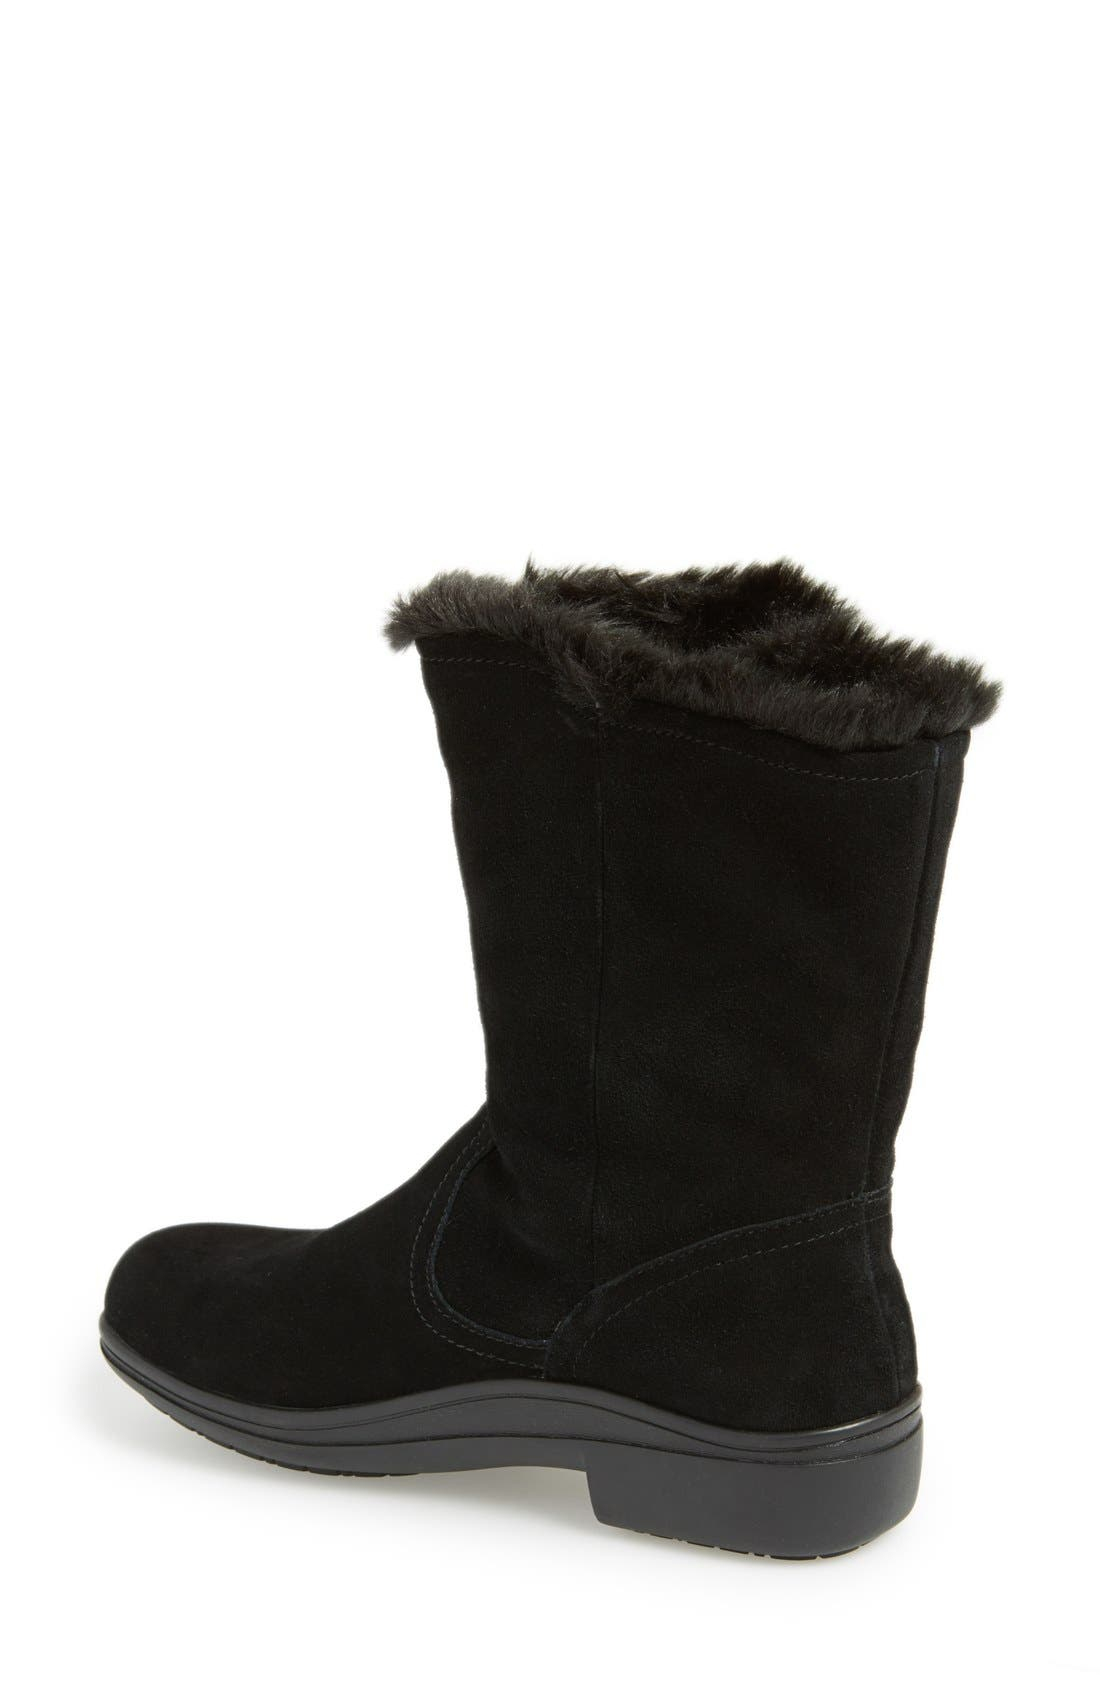 'Nanook' Suede Boot,                             Alternate thumbnail 4, color,                             001